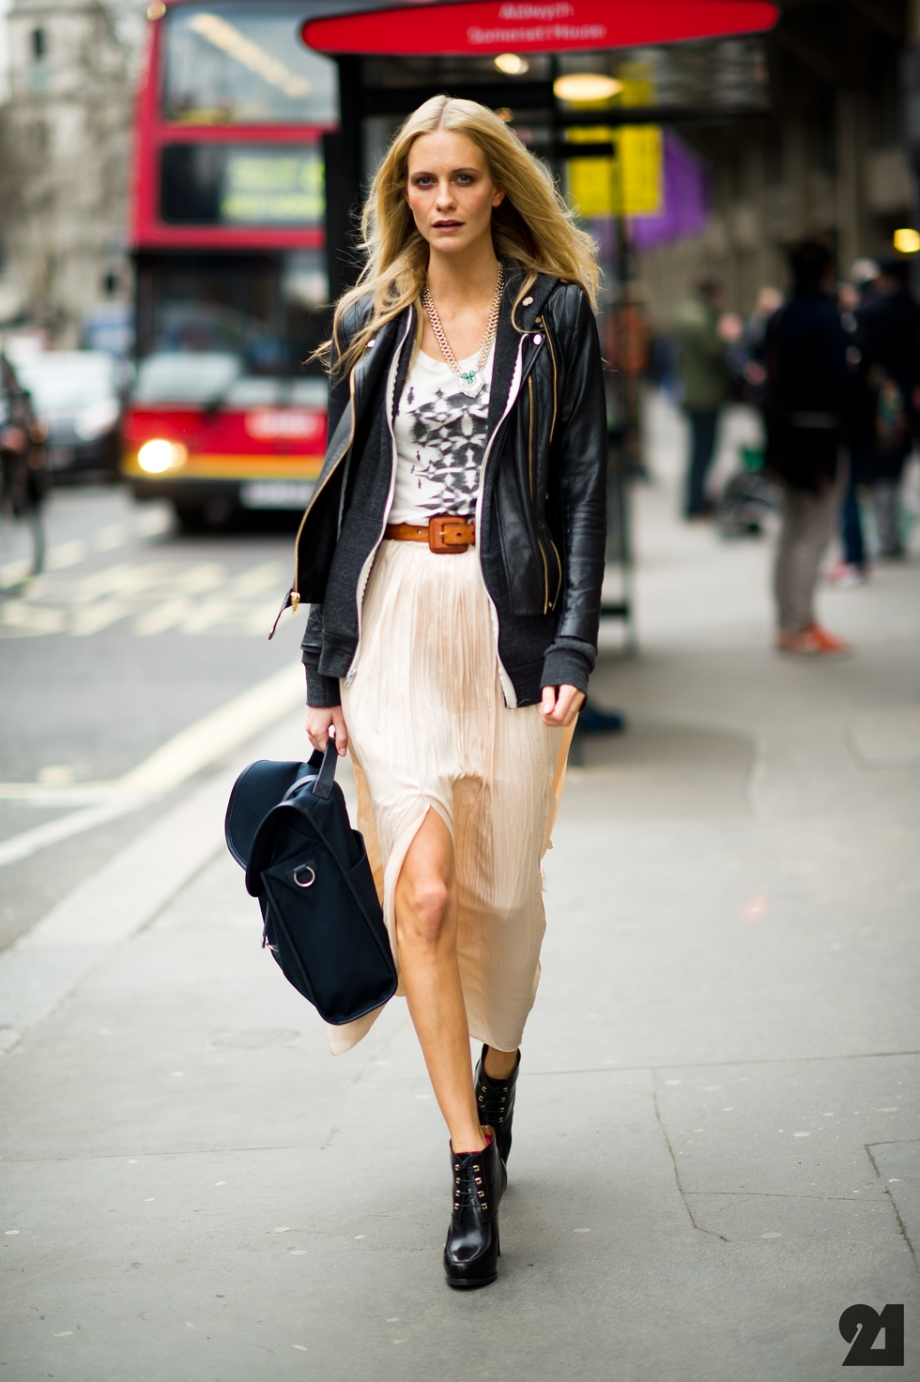 Fashion Week Street Style - Poppy Delevingne